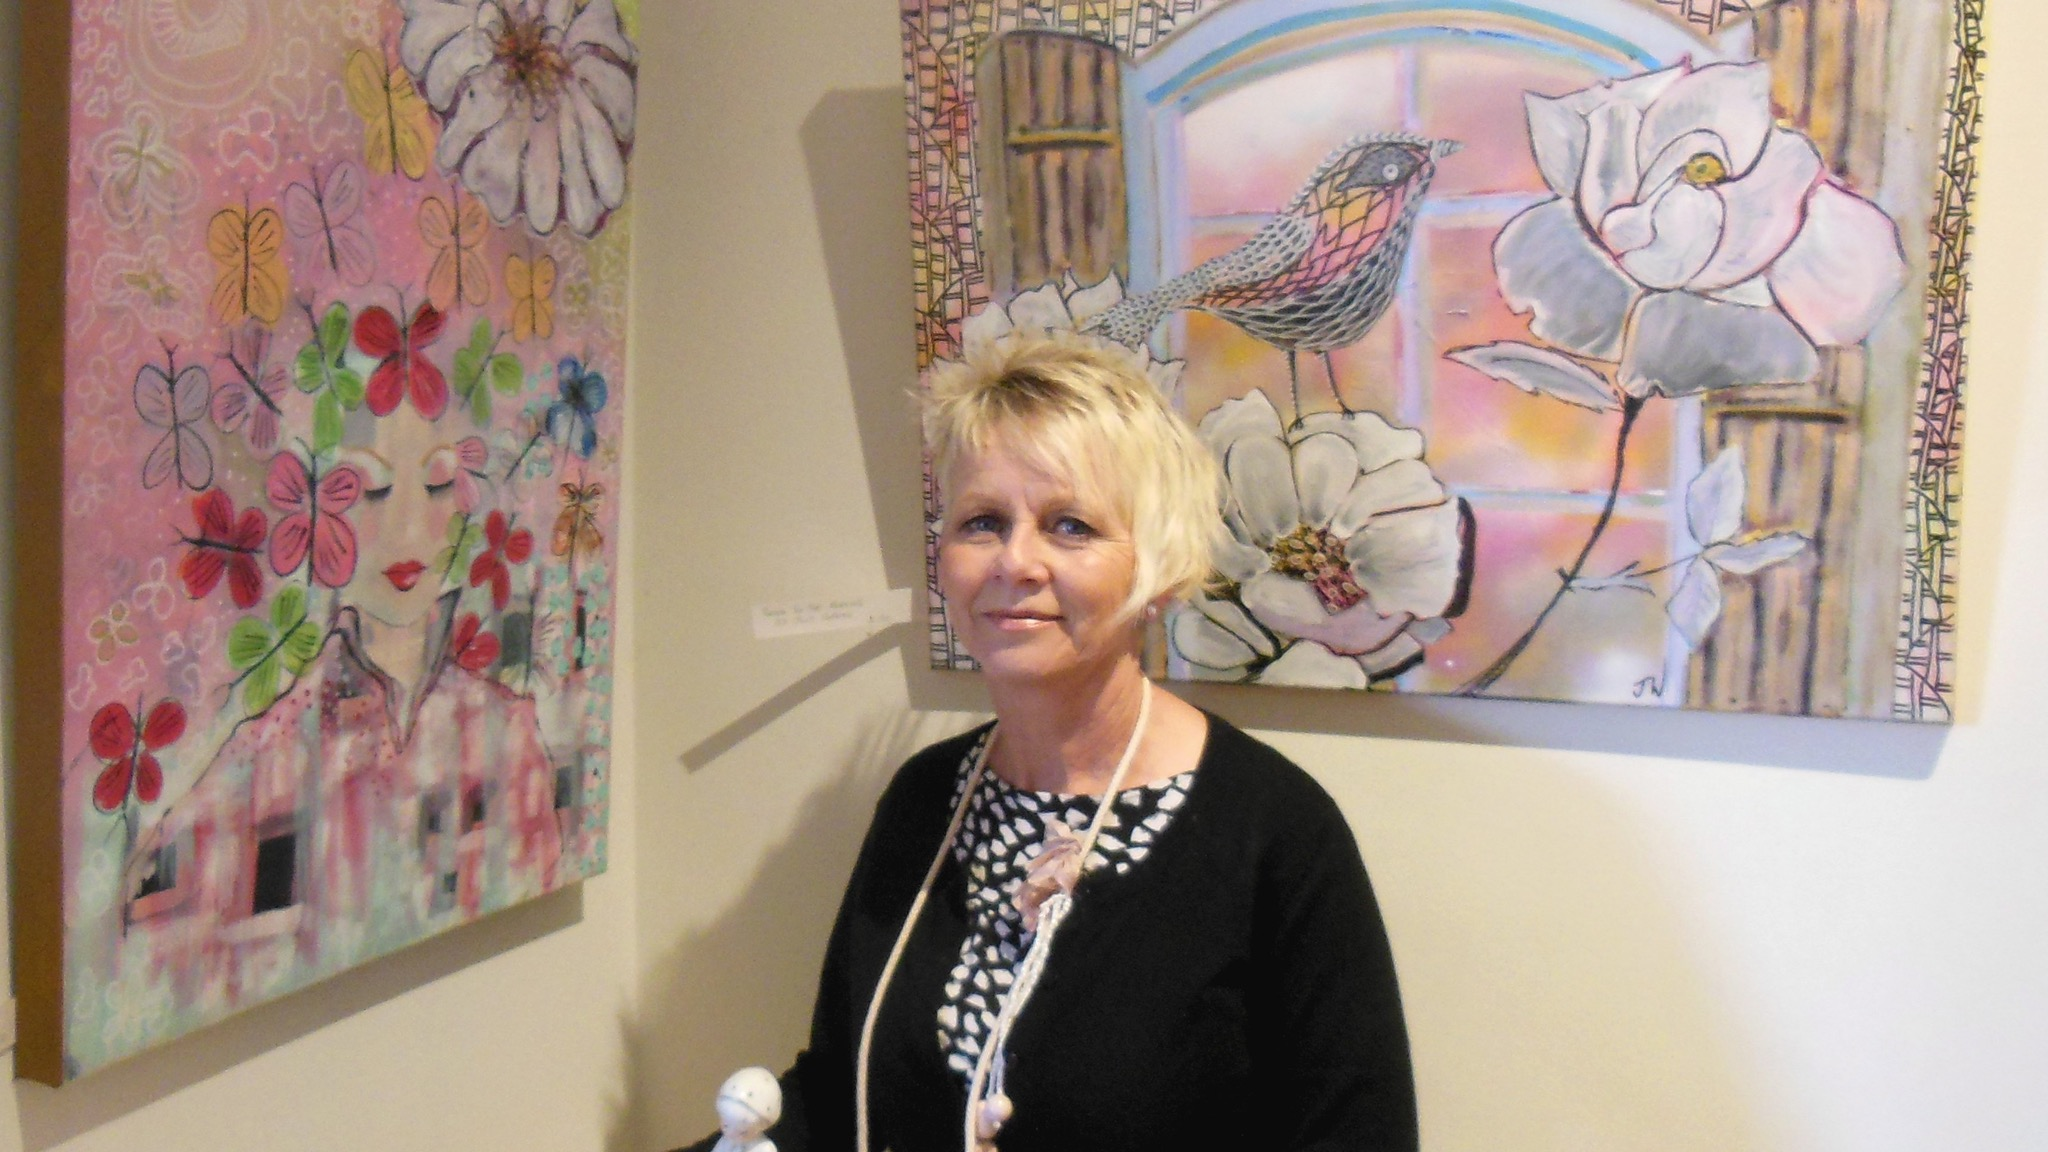 Pyrenees Artist Jilly Watkin with samples of her art work and mosiac art work by Sanne Malkaer.